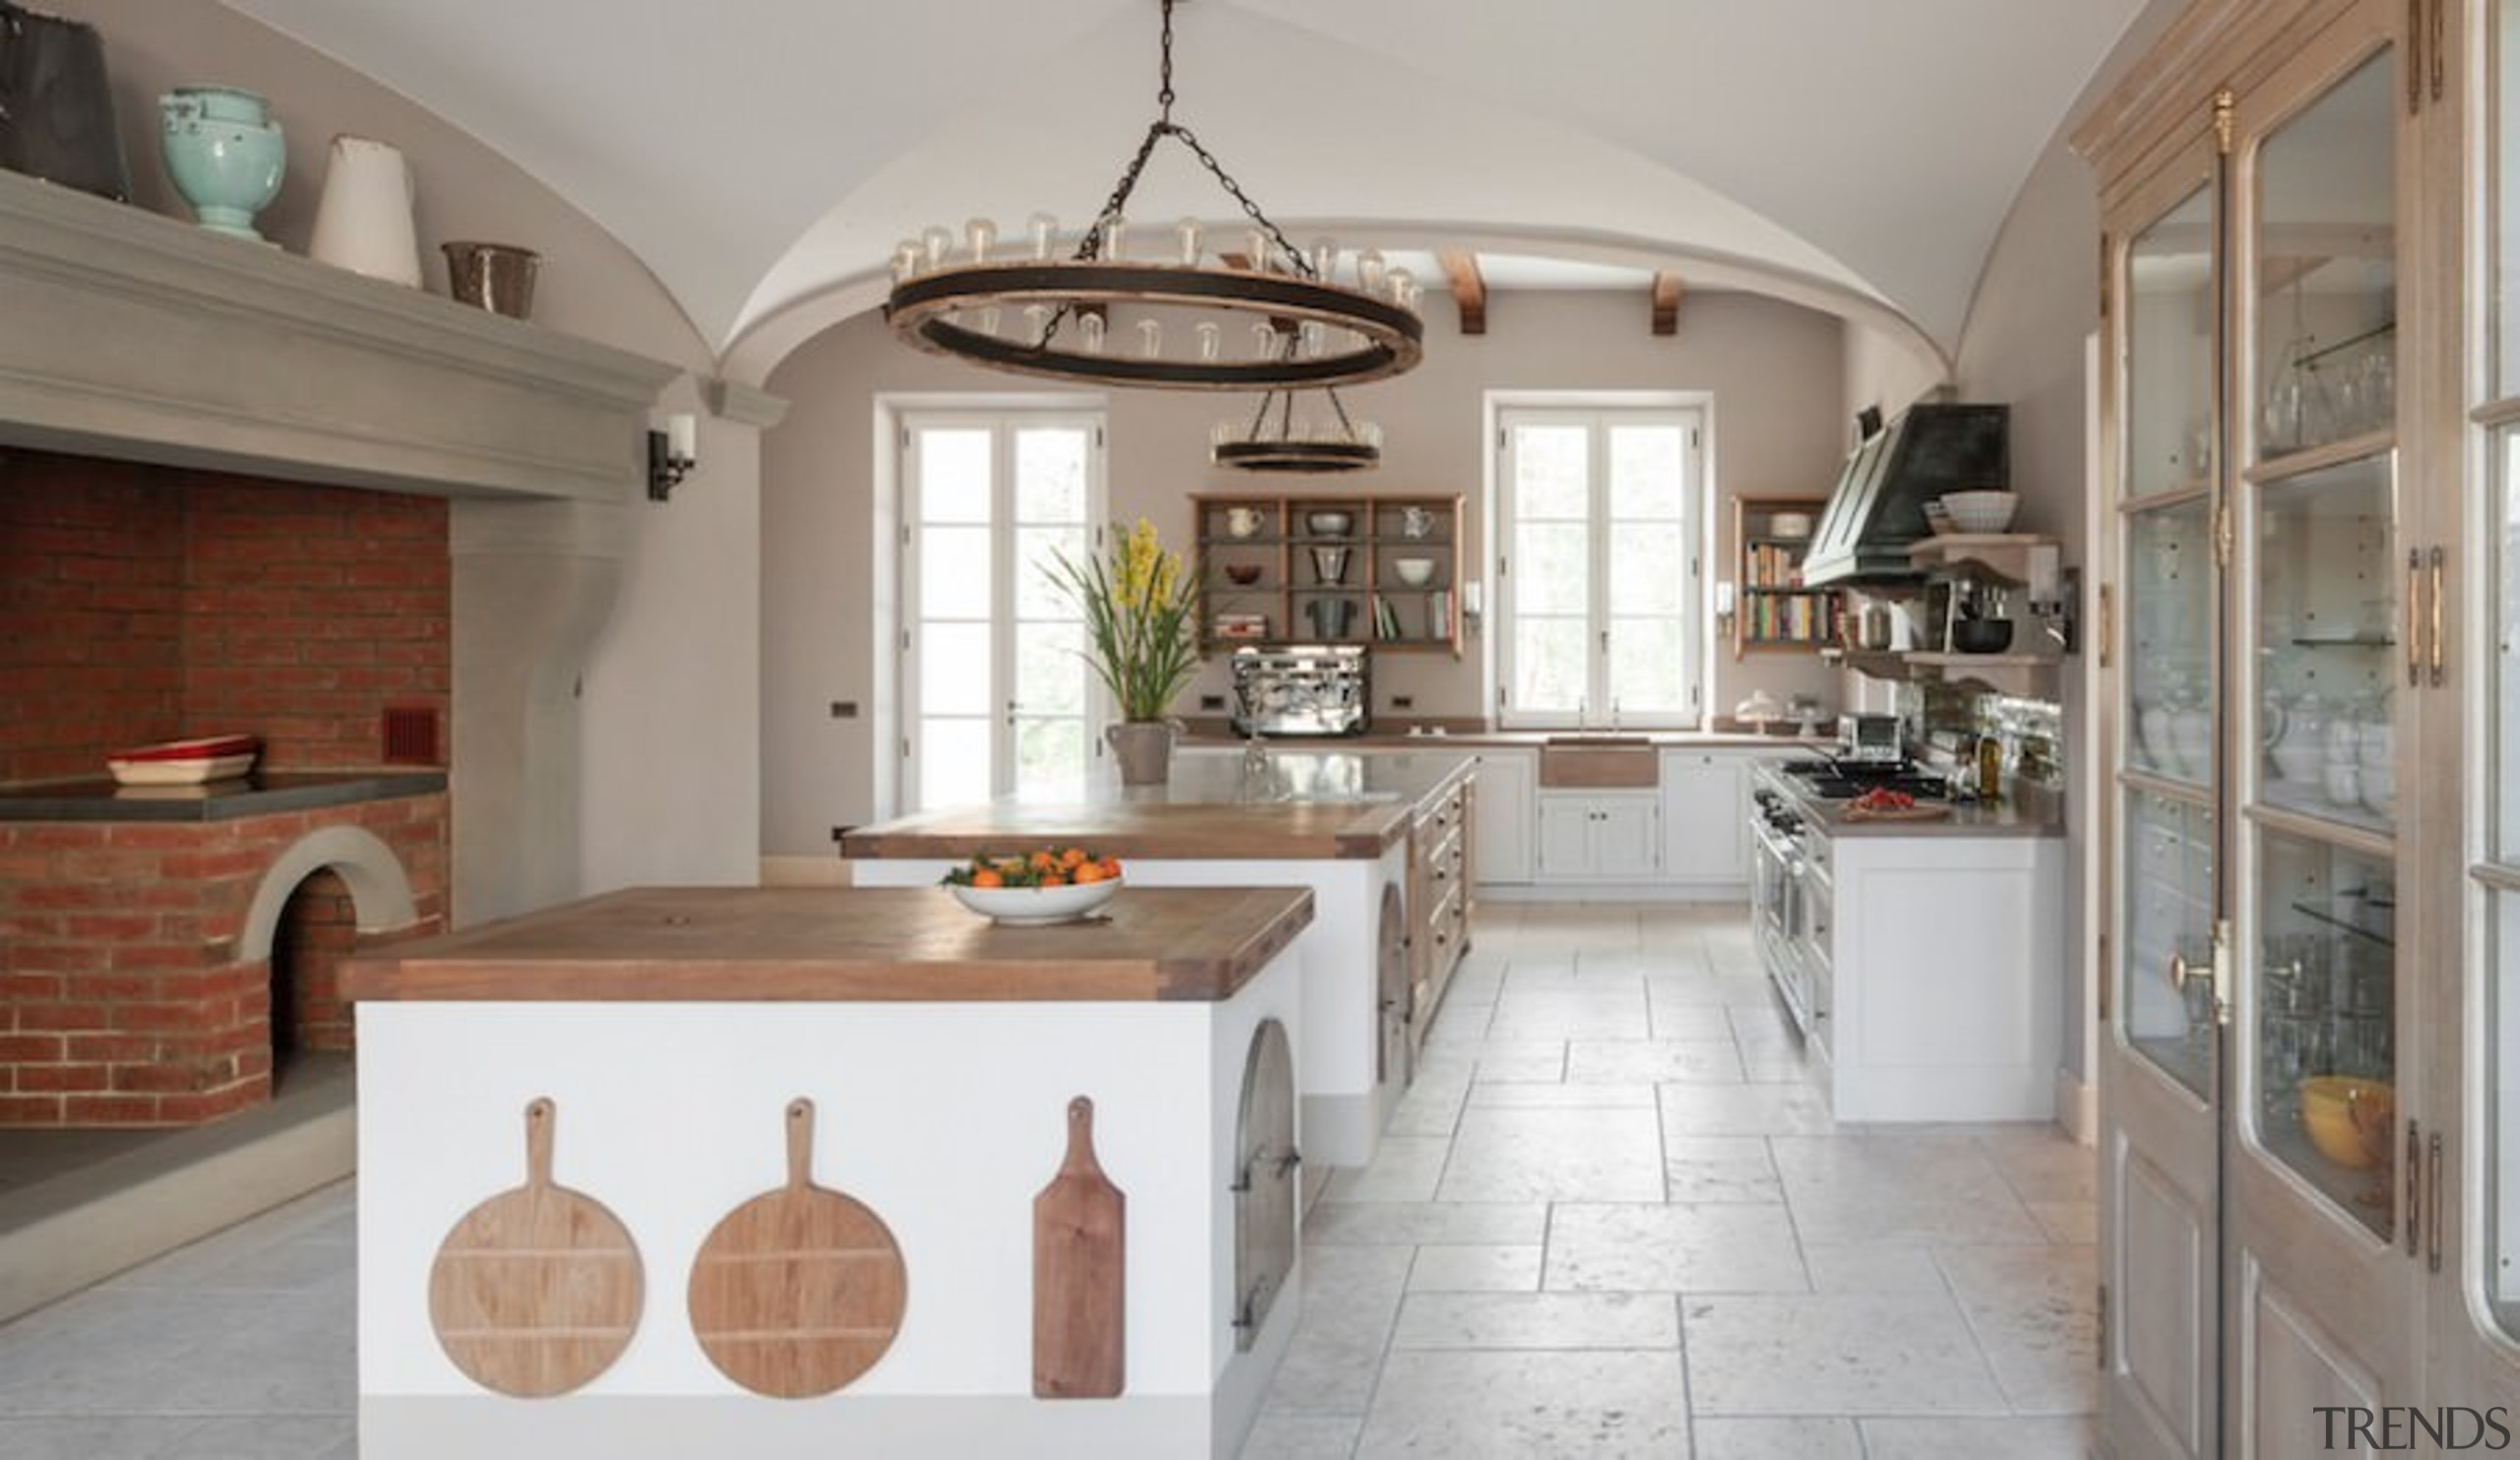 A traditional British kitchen - A traditional British cabinetry, ceiling, countertop, cuisine classique, estate, home, interior design, kitchen, property, real estate, room, gray